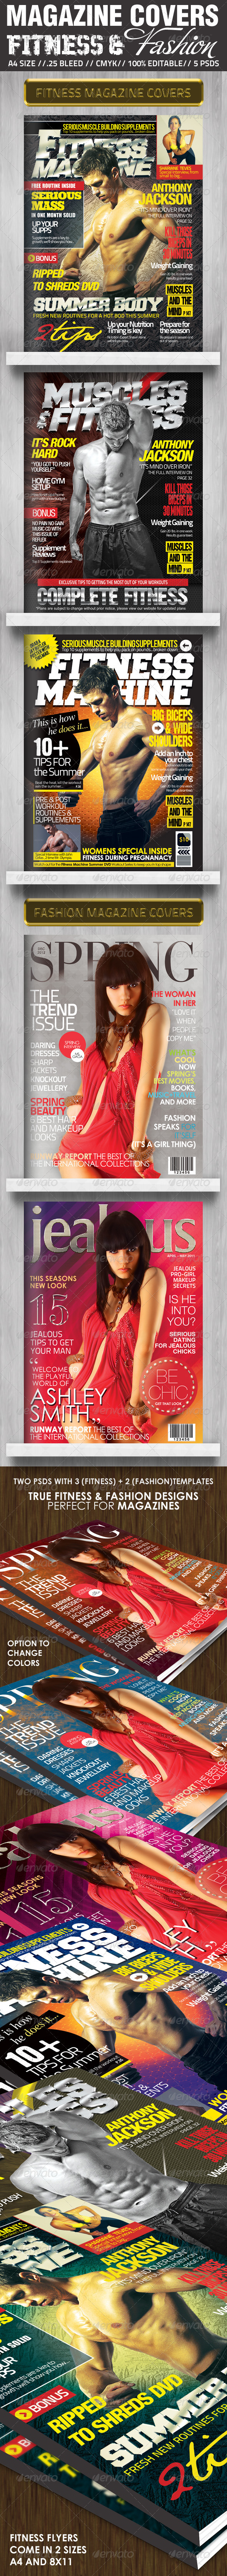 Fashion & Fitness Magazine Cover PSD Templates - Magazines Print Templates